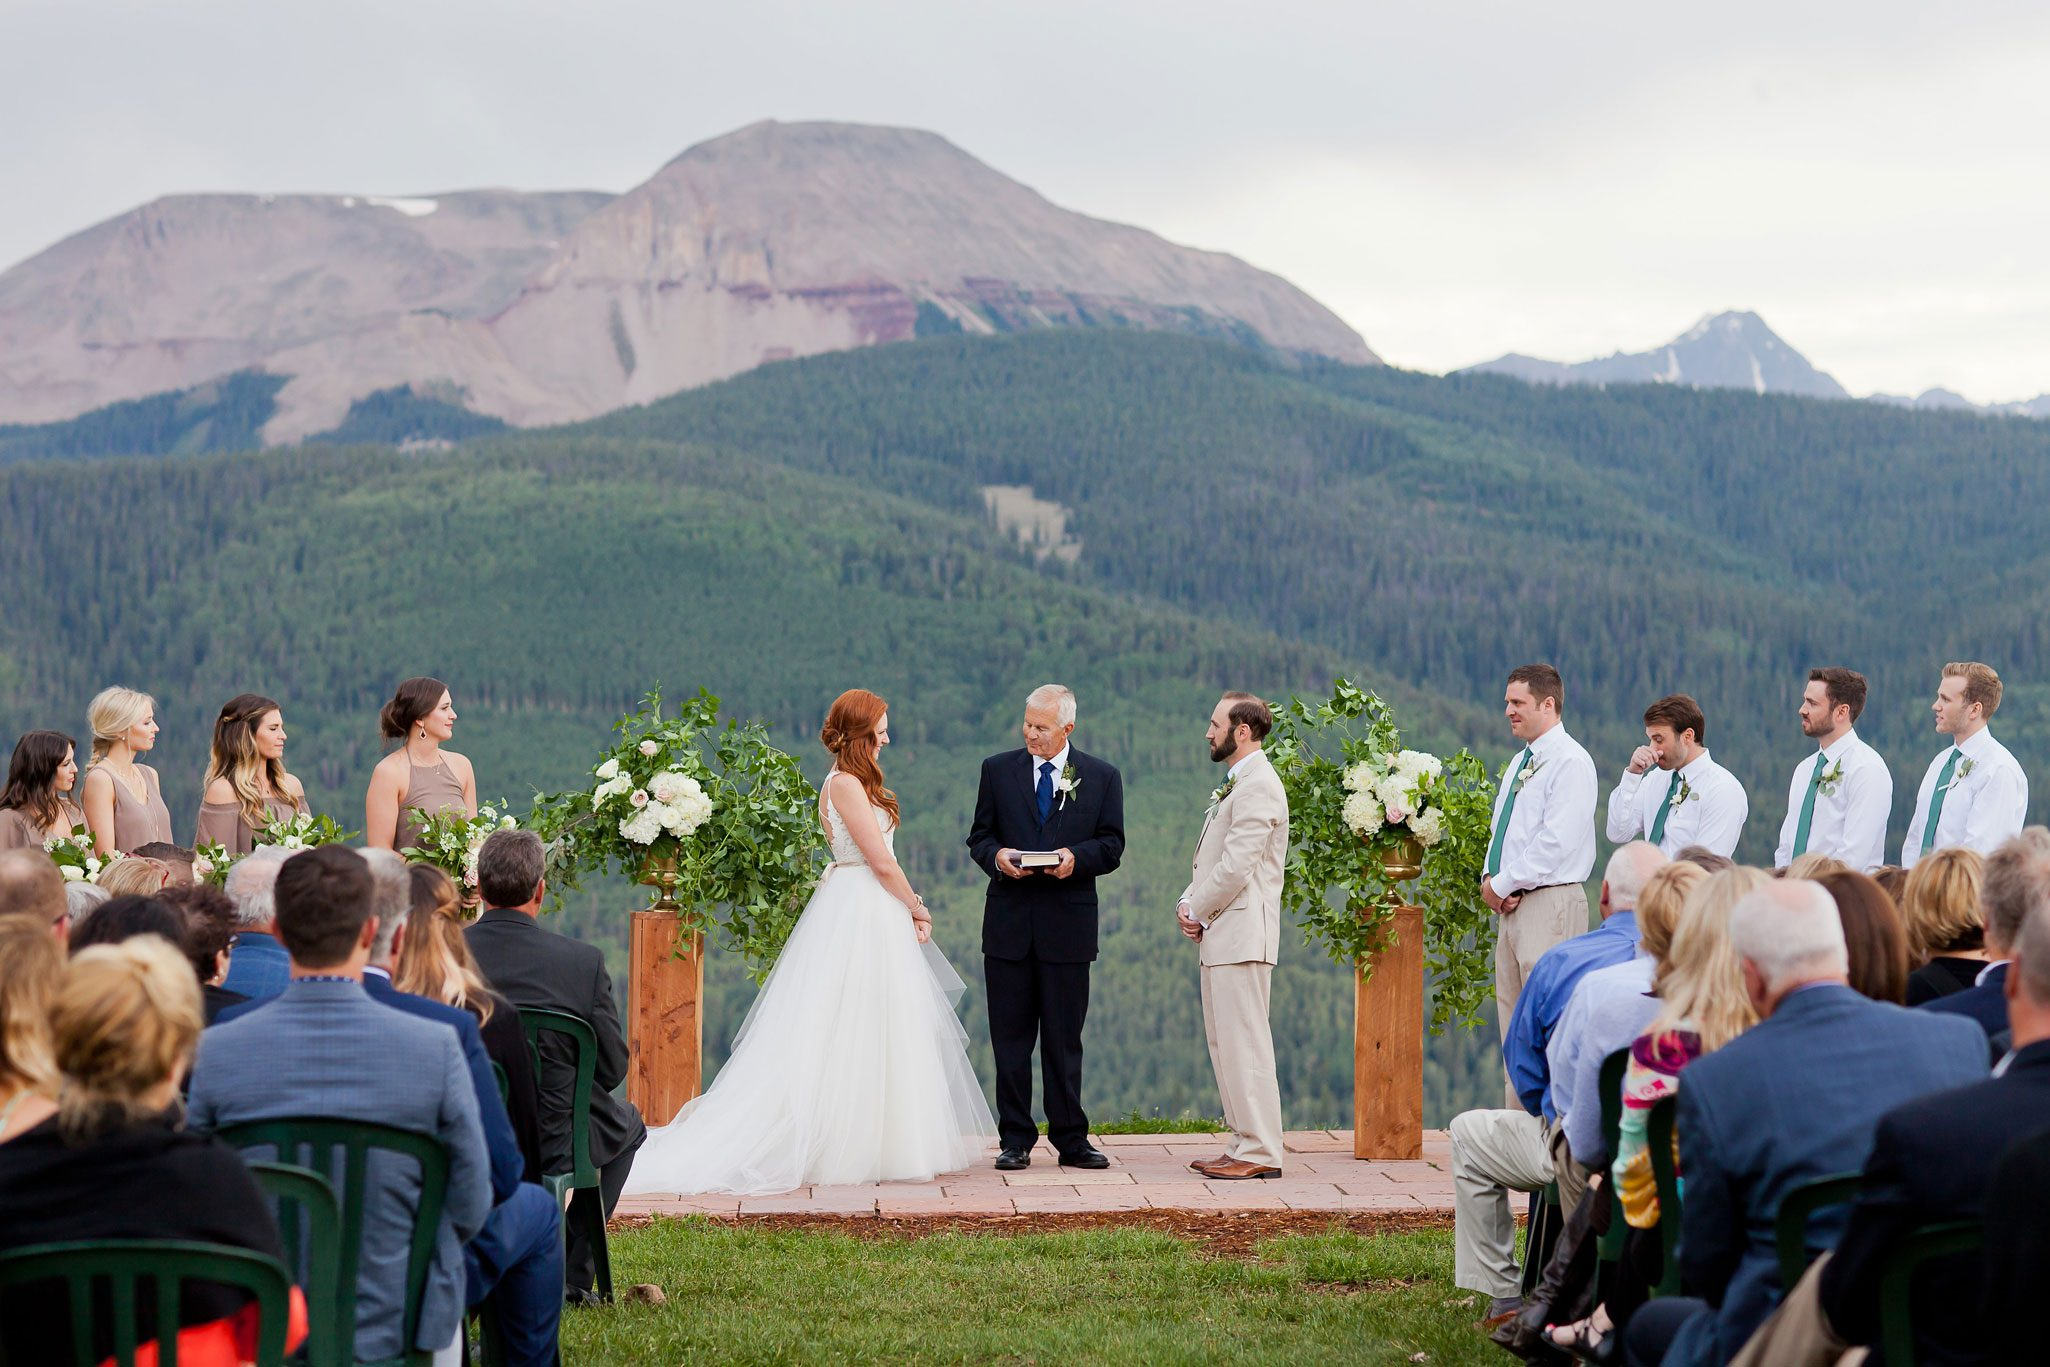 A Mountaintop Ceremony at Purgatory Resort, Durango, Colorado